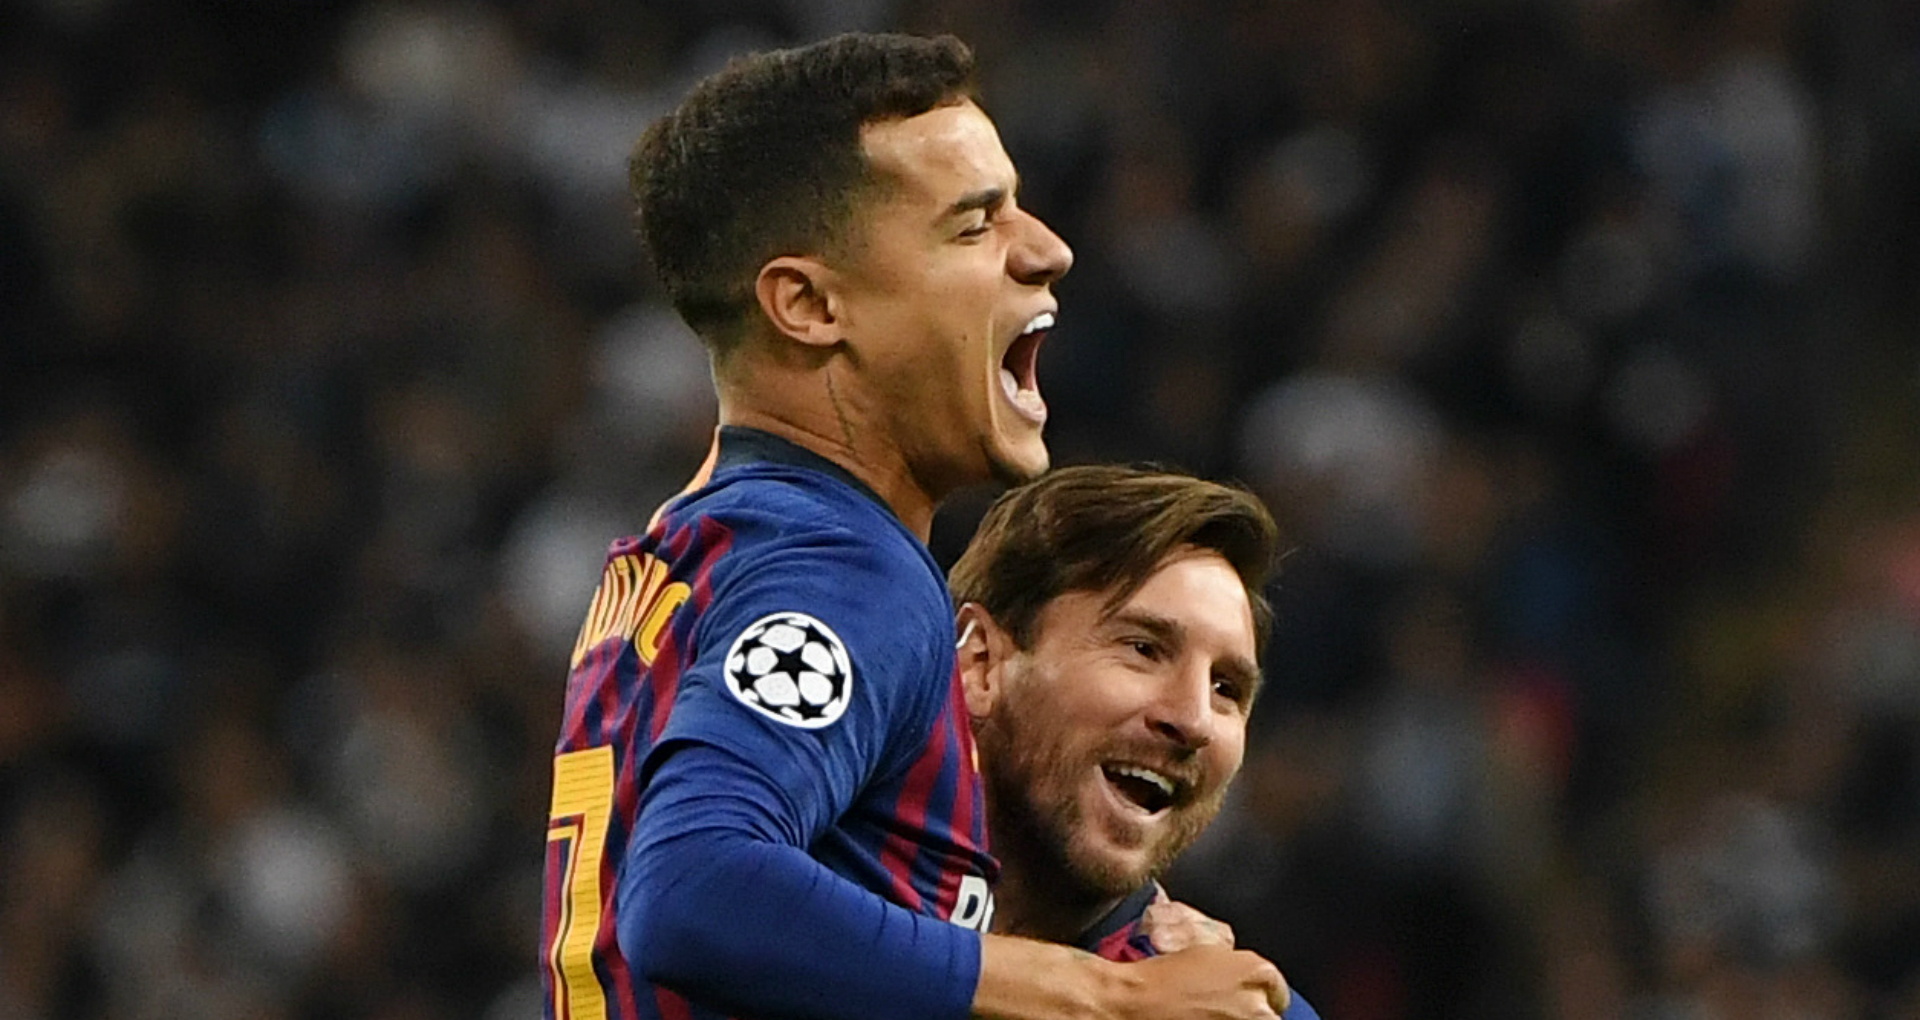 Coutinho and Insigne aiming to maintain hot streaks - Champions League in Opta numbers